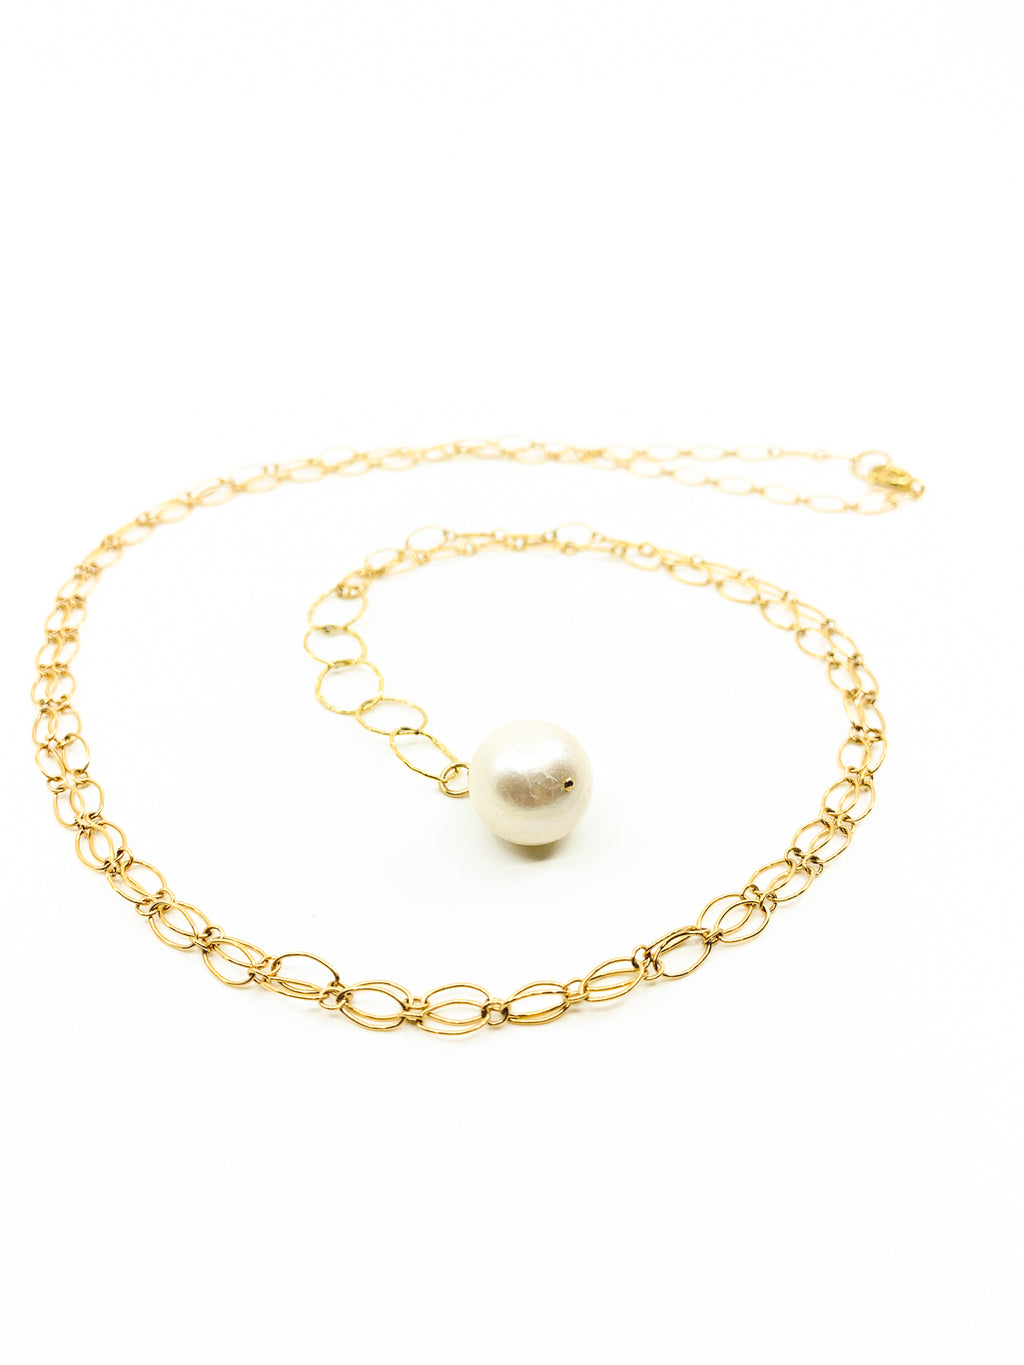 white pearl long gold chain necklace by eve black jewelry made in Hawaii